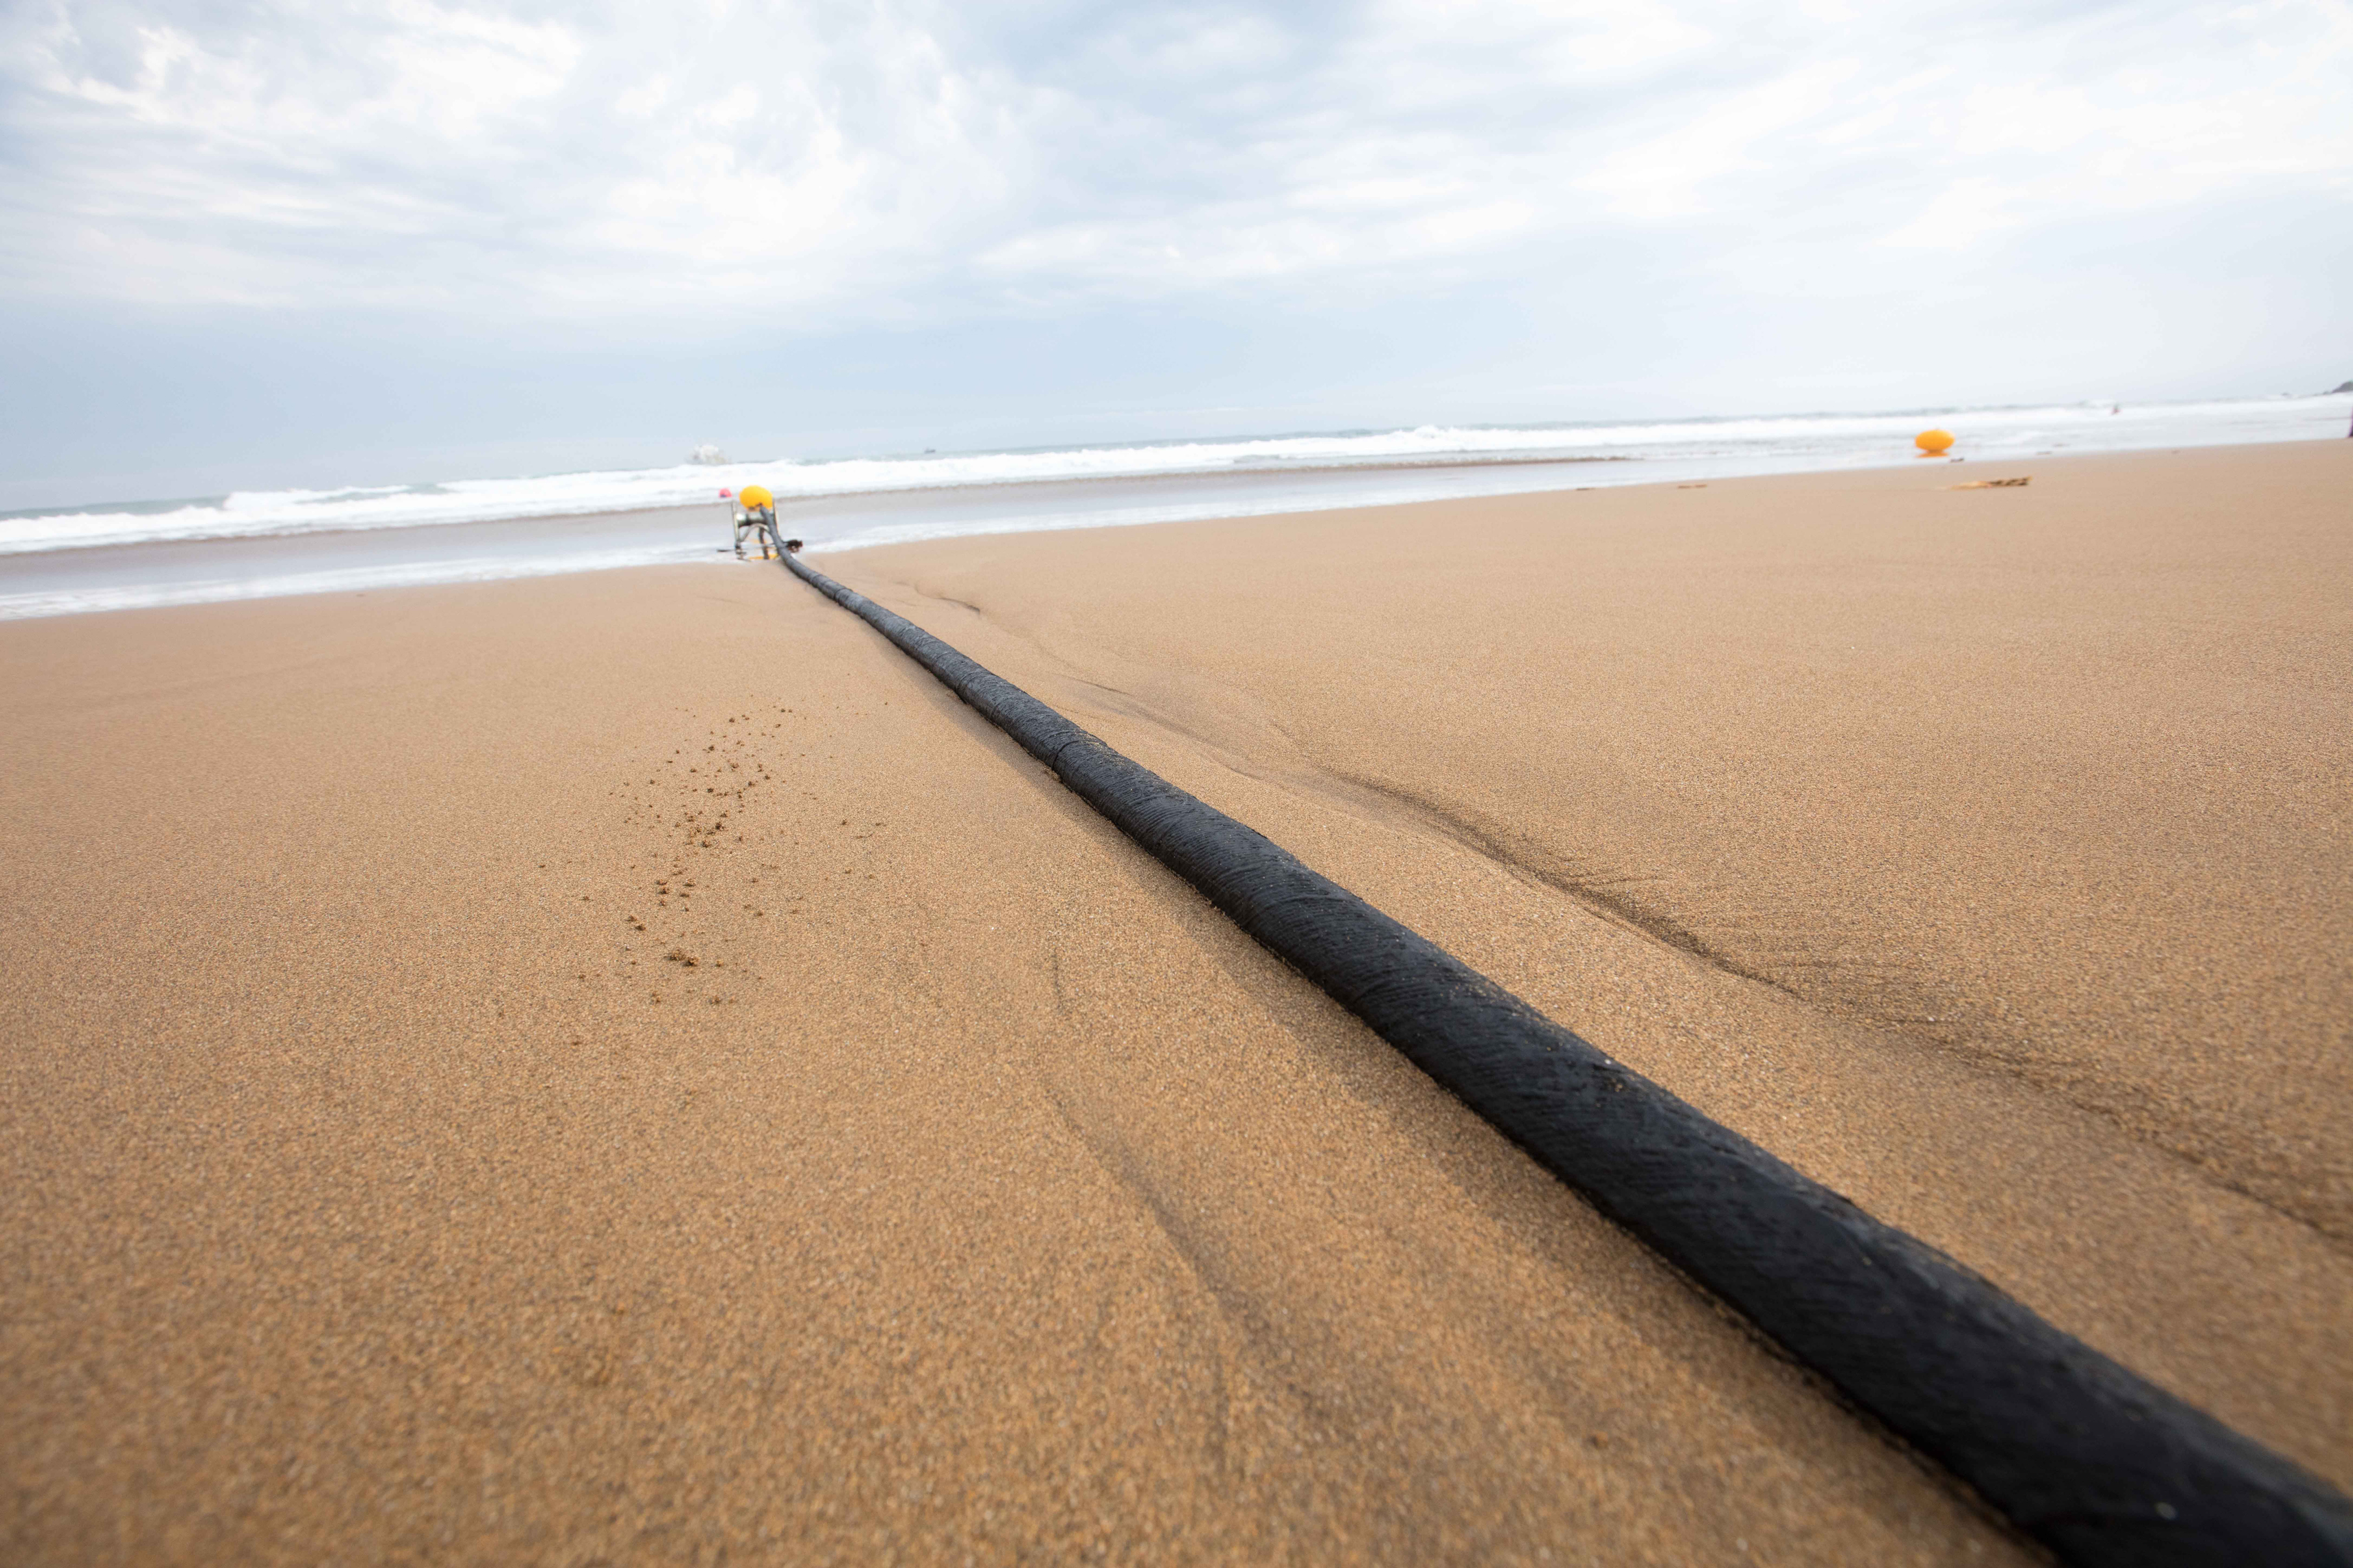 Microsoft and Facebook's transatlantic subsea internet cable